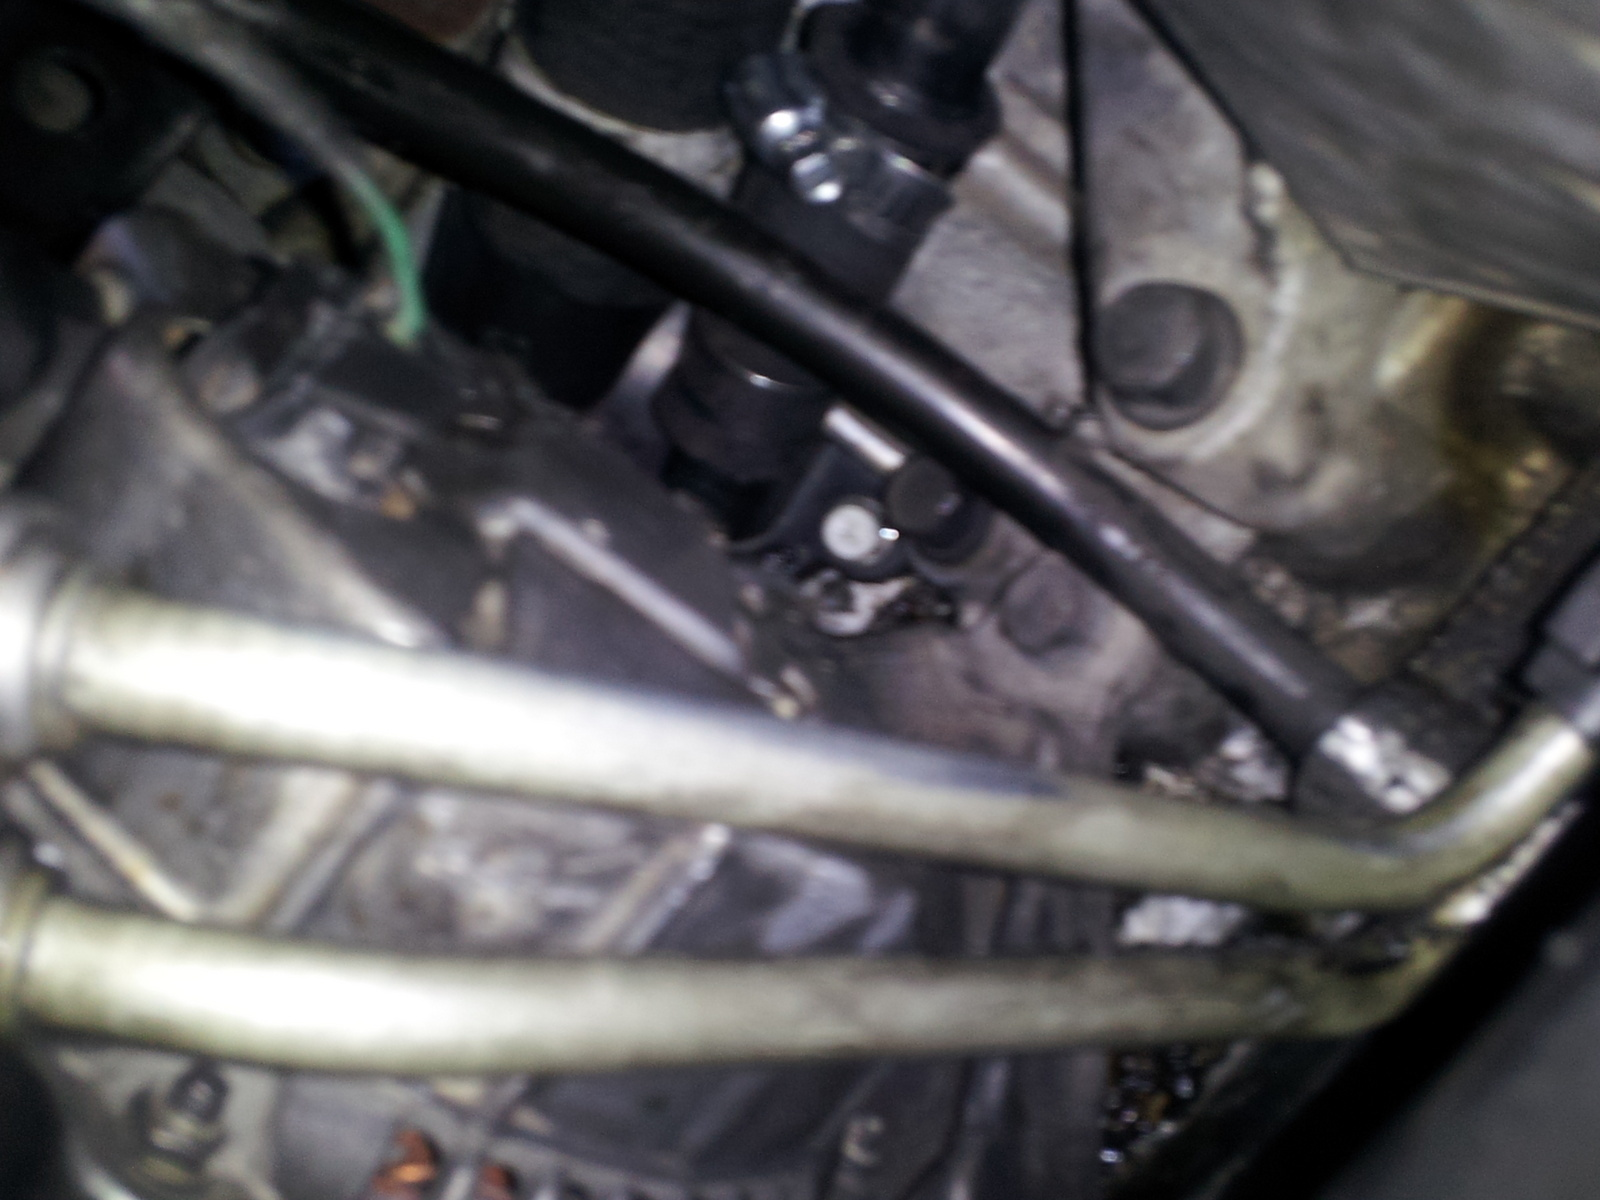 hight resolution of 2 7 engine have a little hole that keeps leaking coolant from the motor its